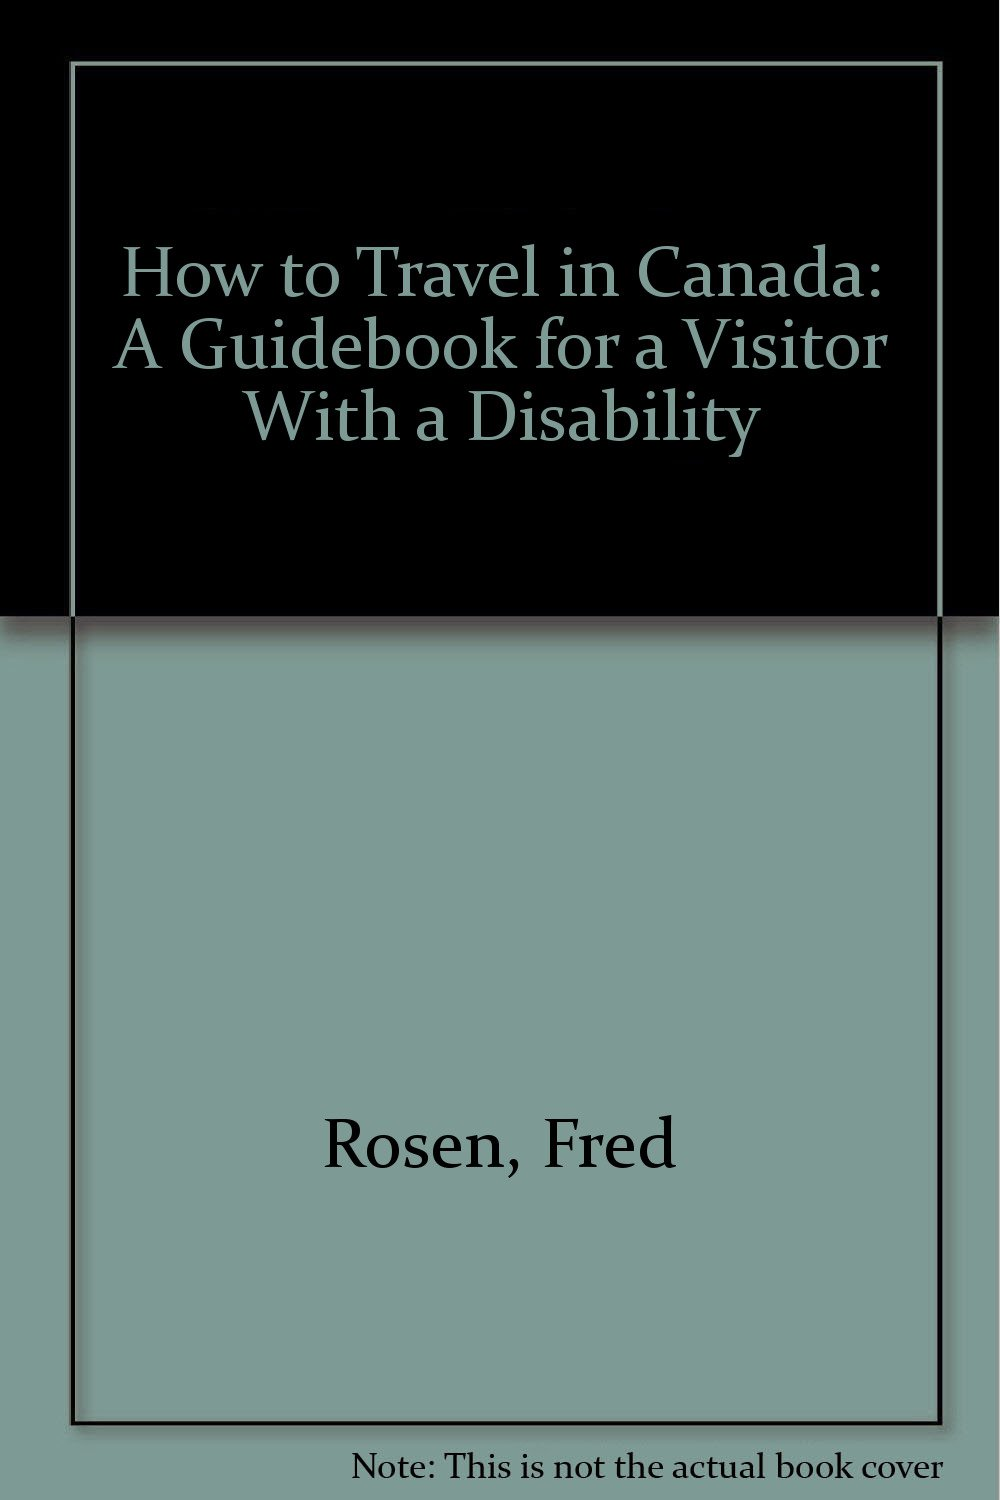 How to Travel in Canada: A Guidebook for a Visitor With a Disability